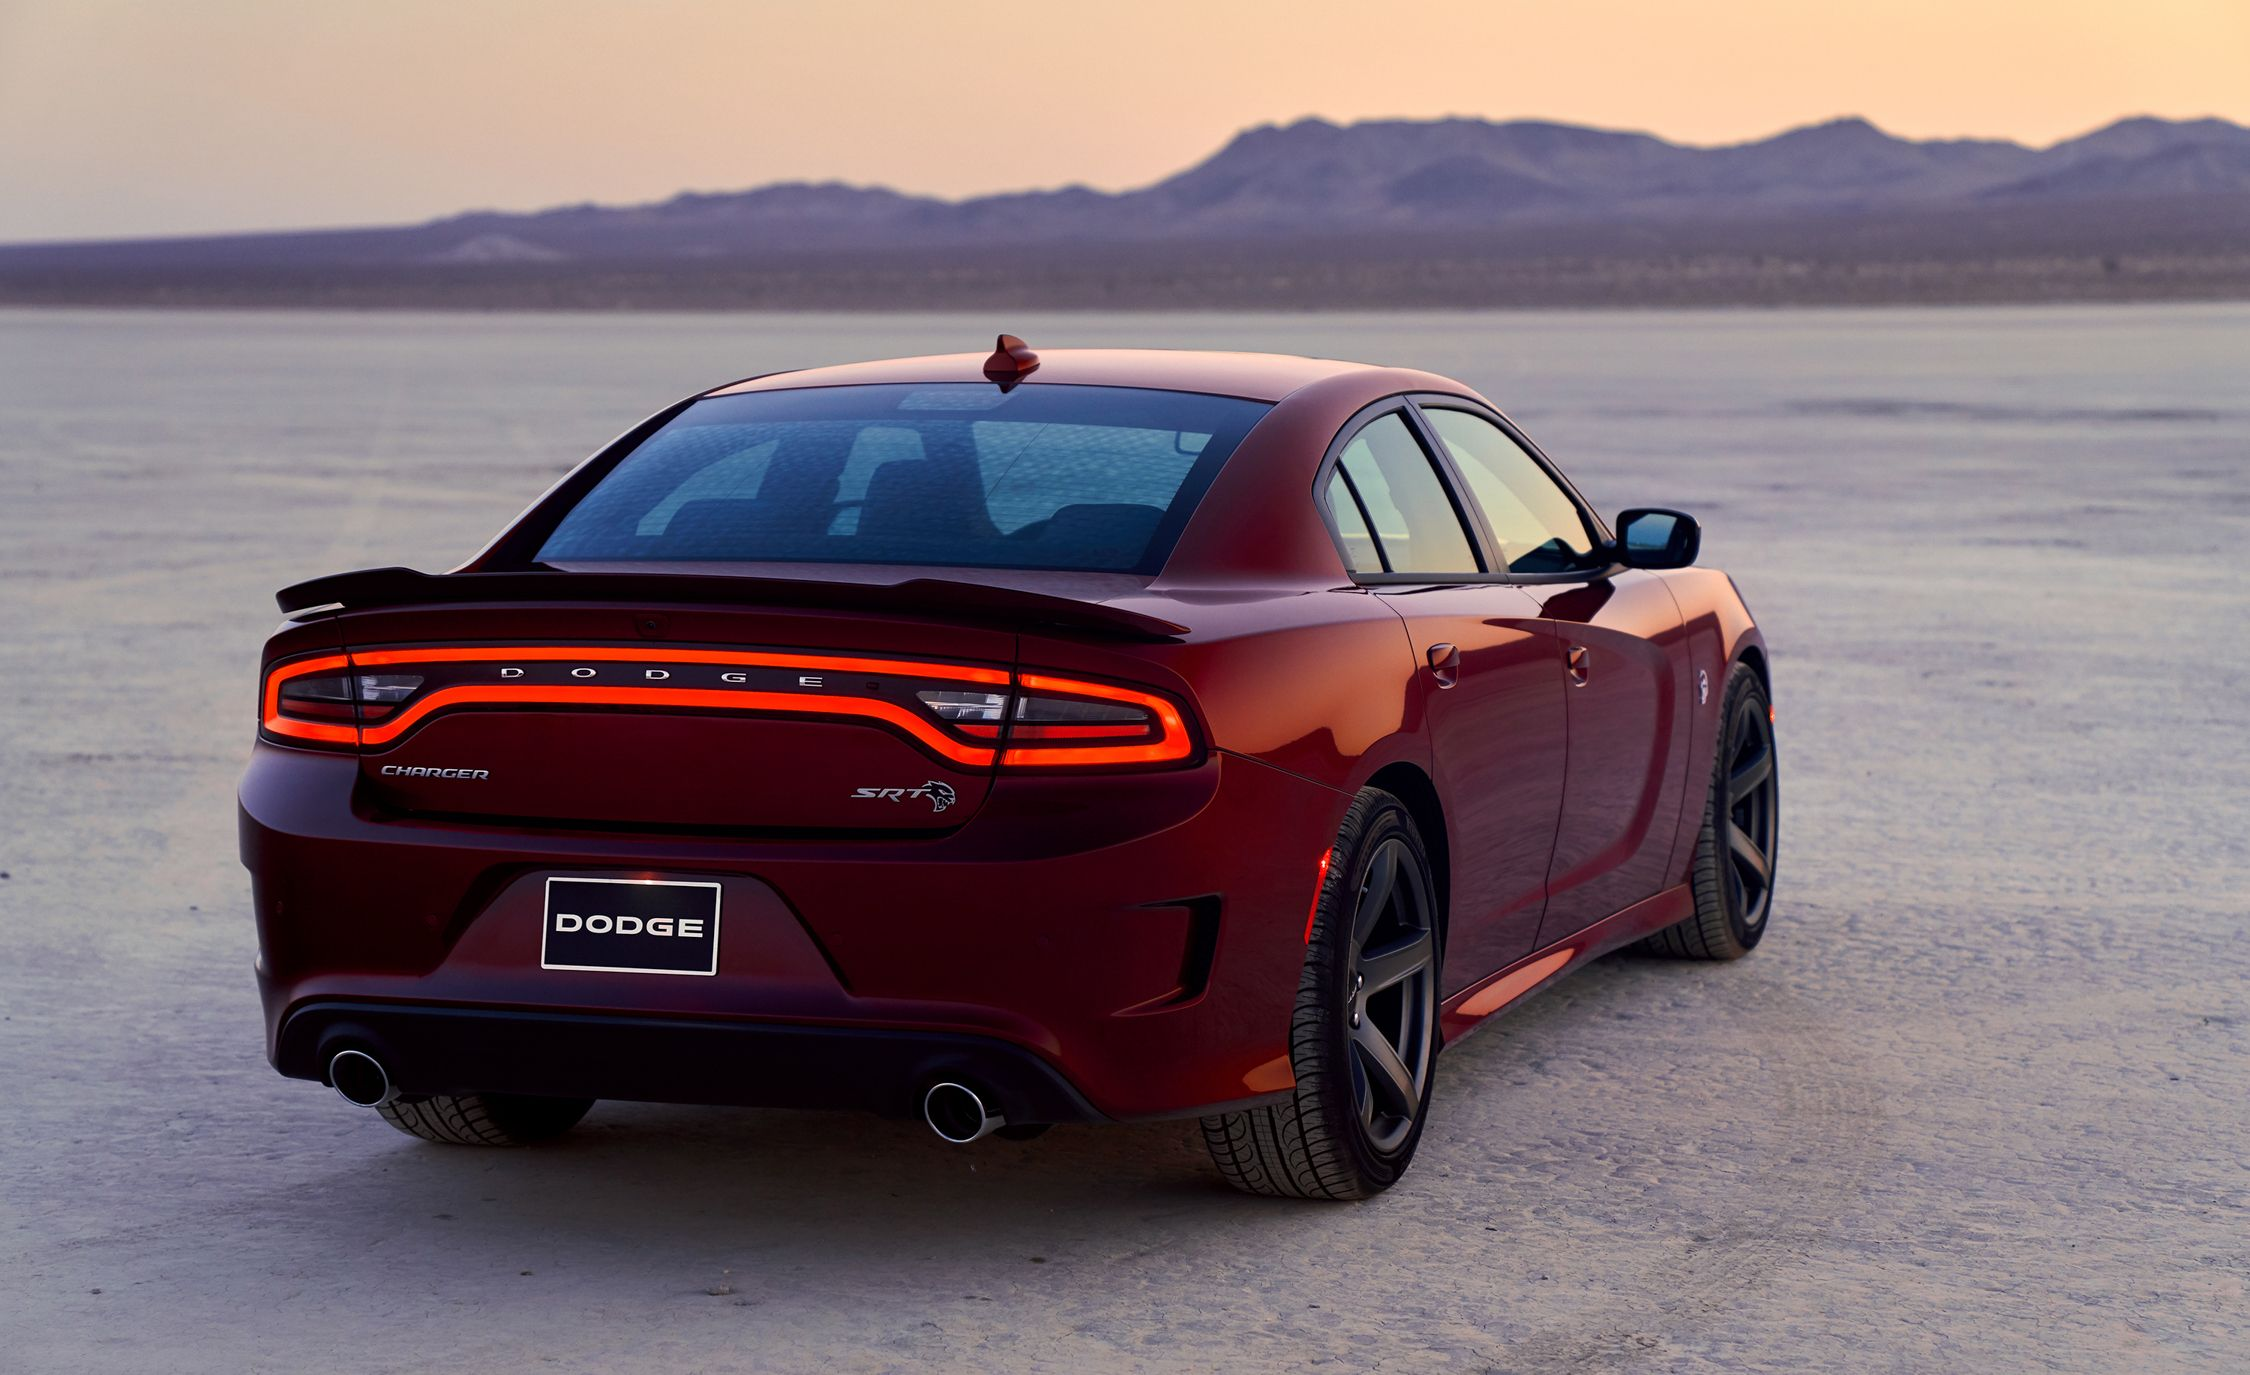 2019 Dodge Charger Srt Hellcat Reviews 2015 Custom Wheels Price Photos And Specs Car Driver